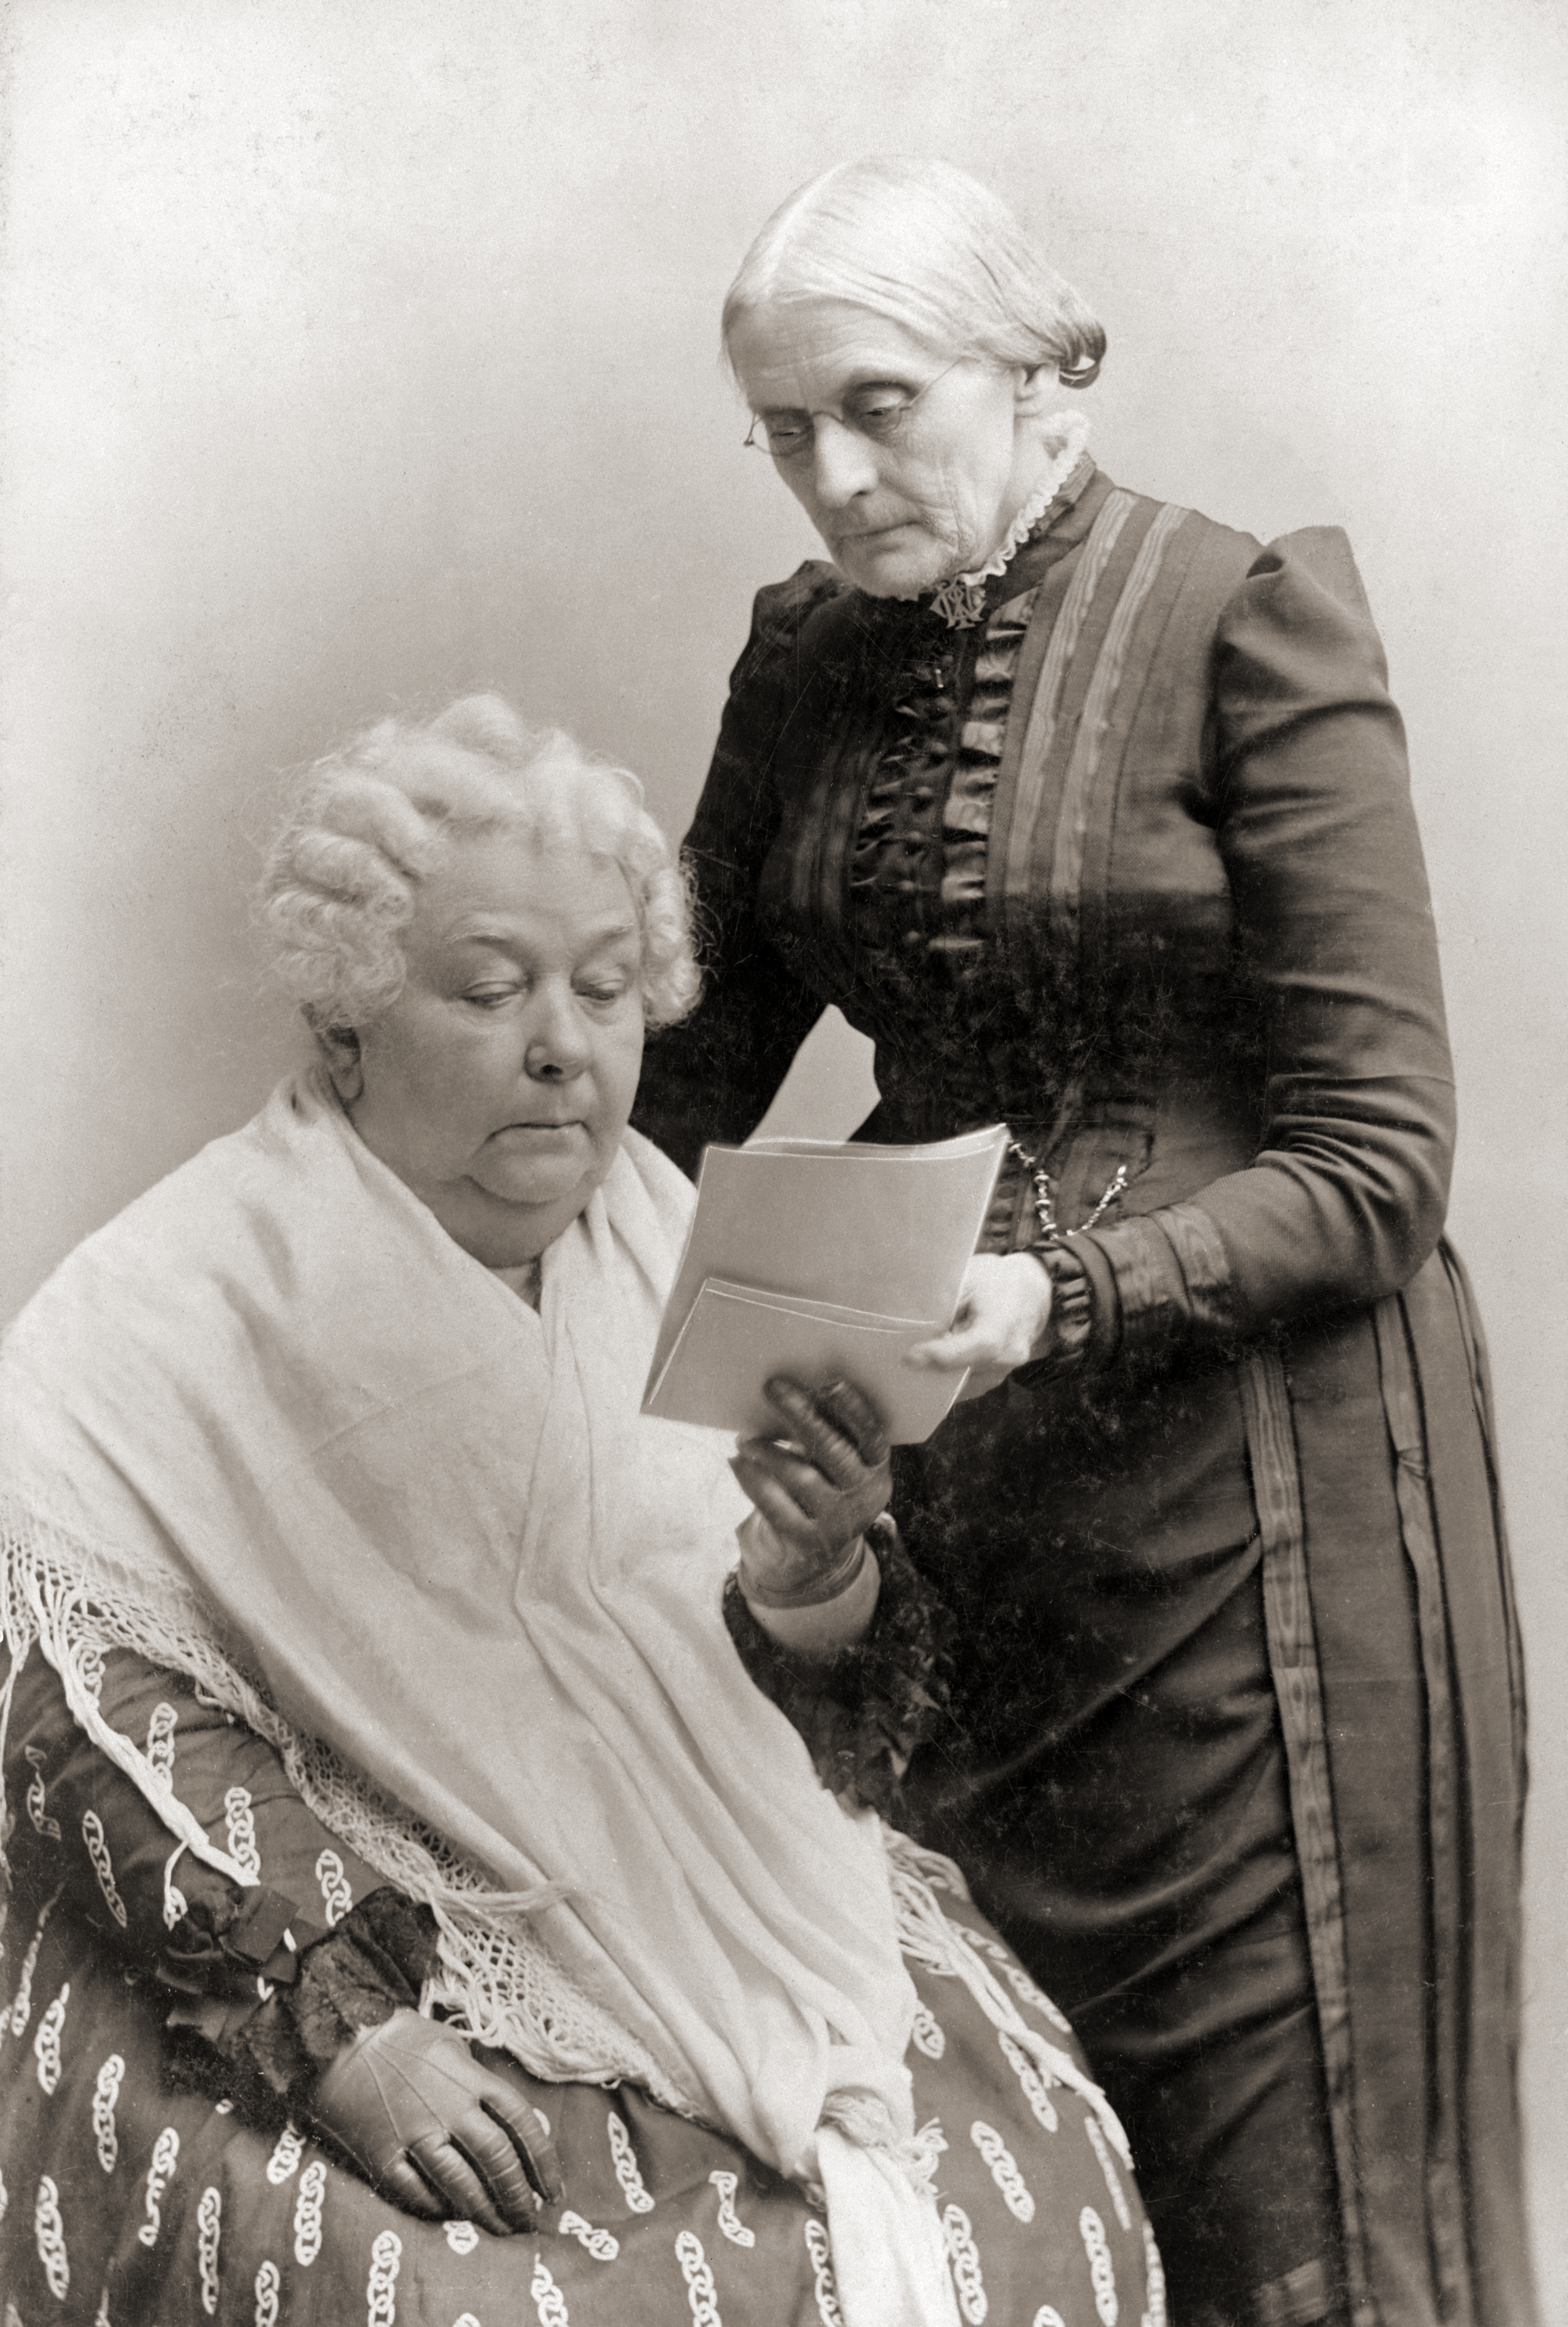 Elizabeth Cady Stanton and Susan B. Anthony. (Credit: GraphicaArtis/Getty Images)